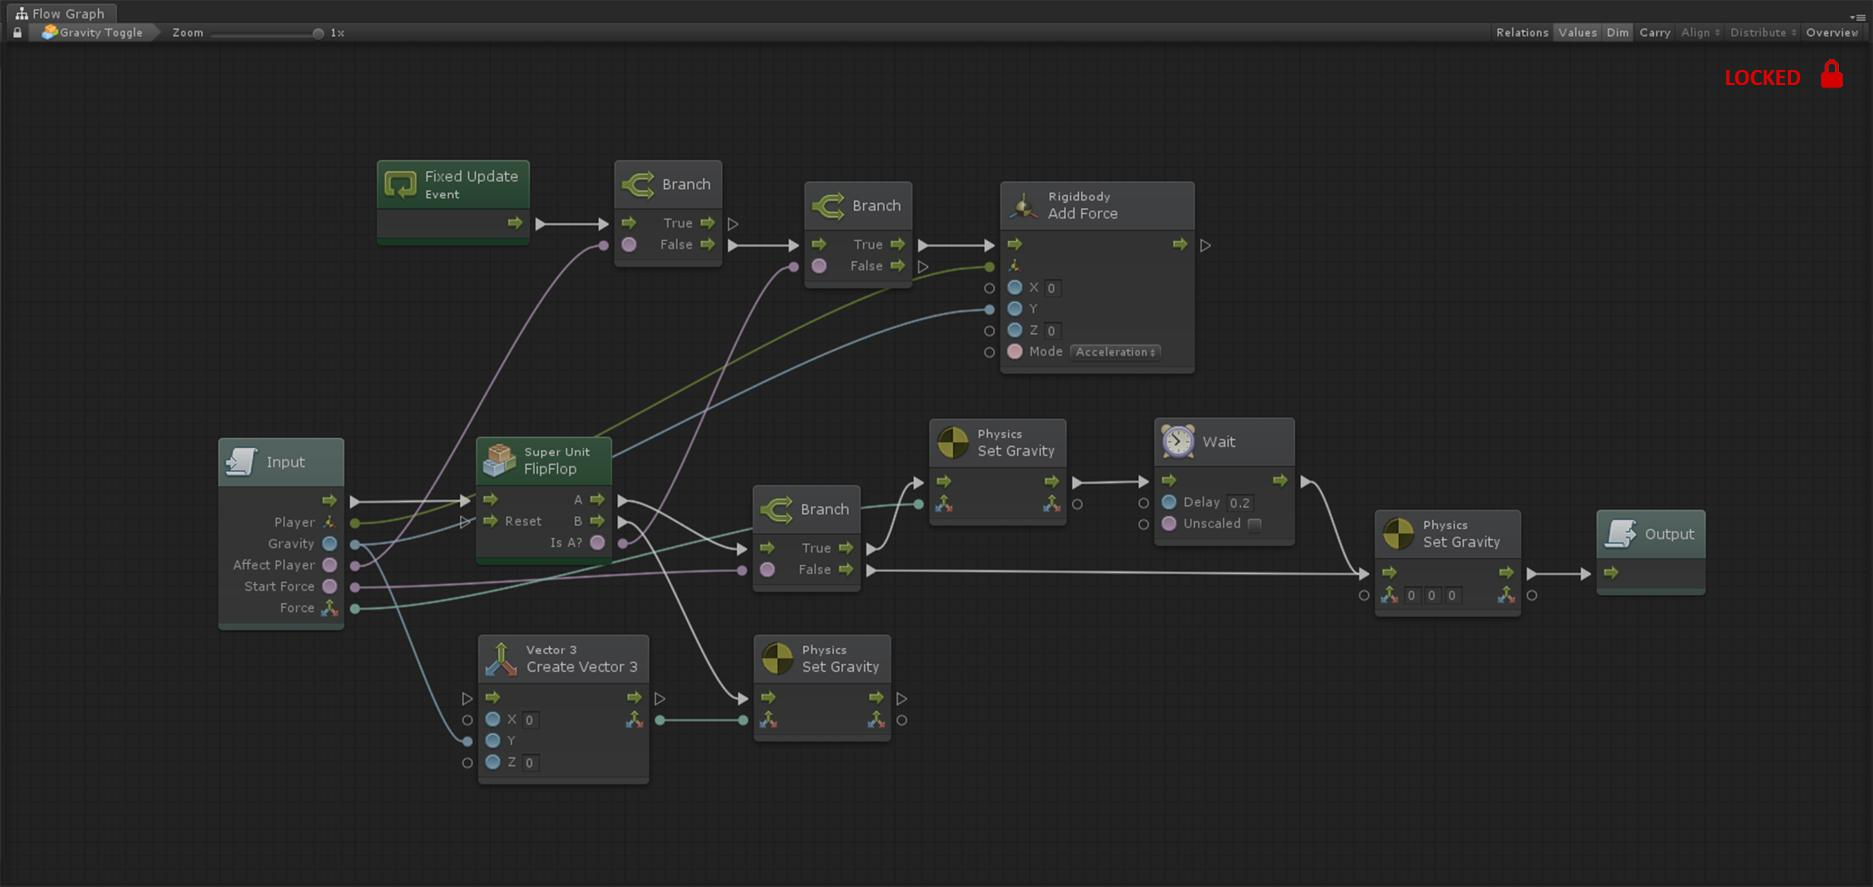 hight resolution of the lock state when that graph is selected could be shown by greying out all the nodes and or having some noticeable red label or lock icon to indicate it